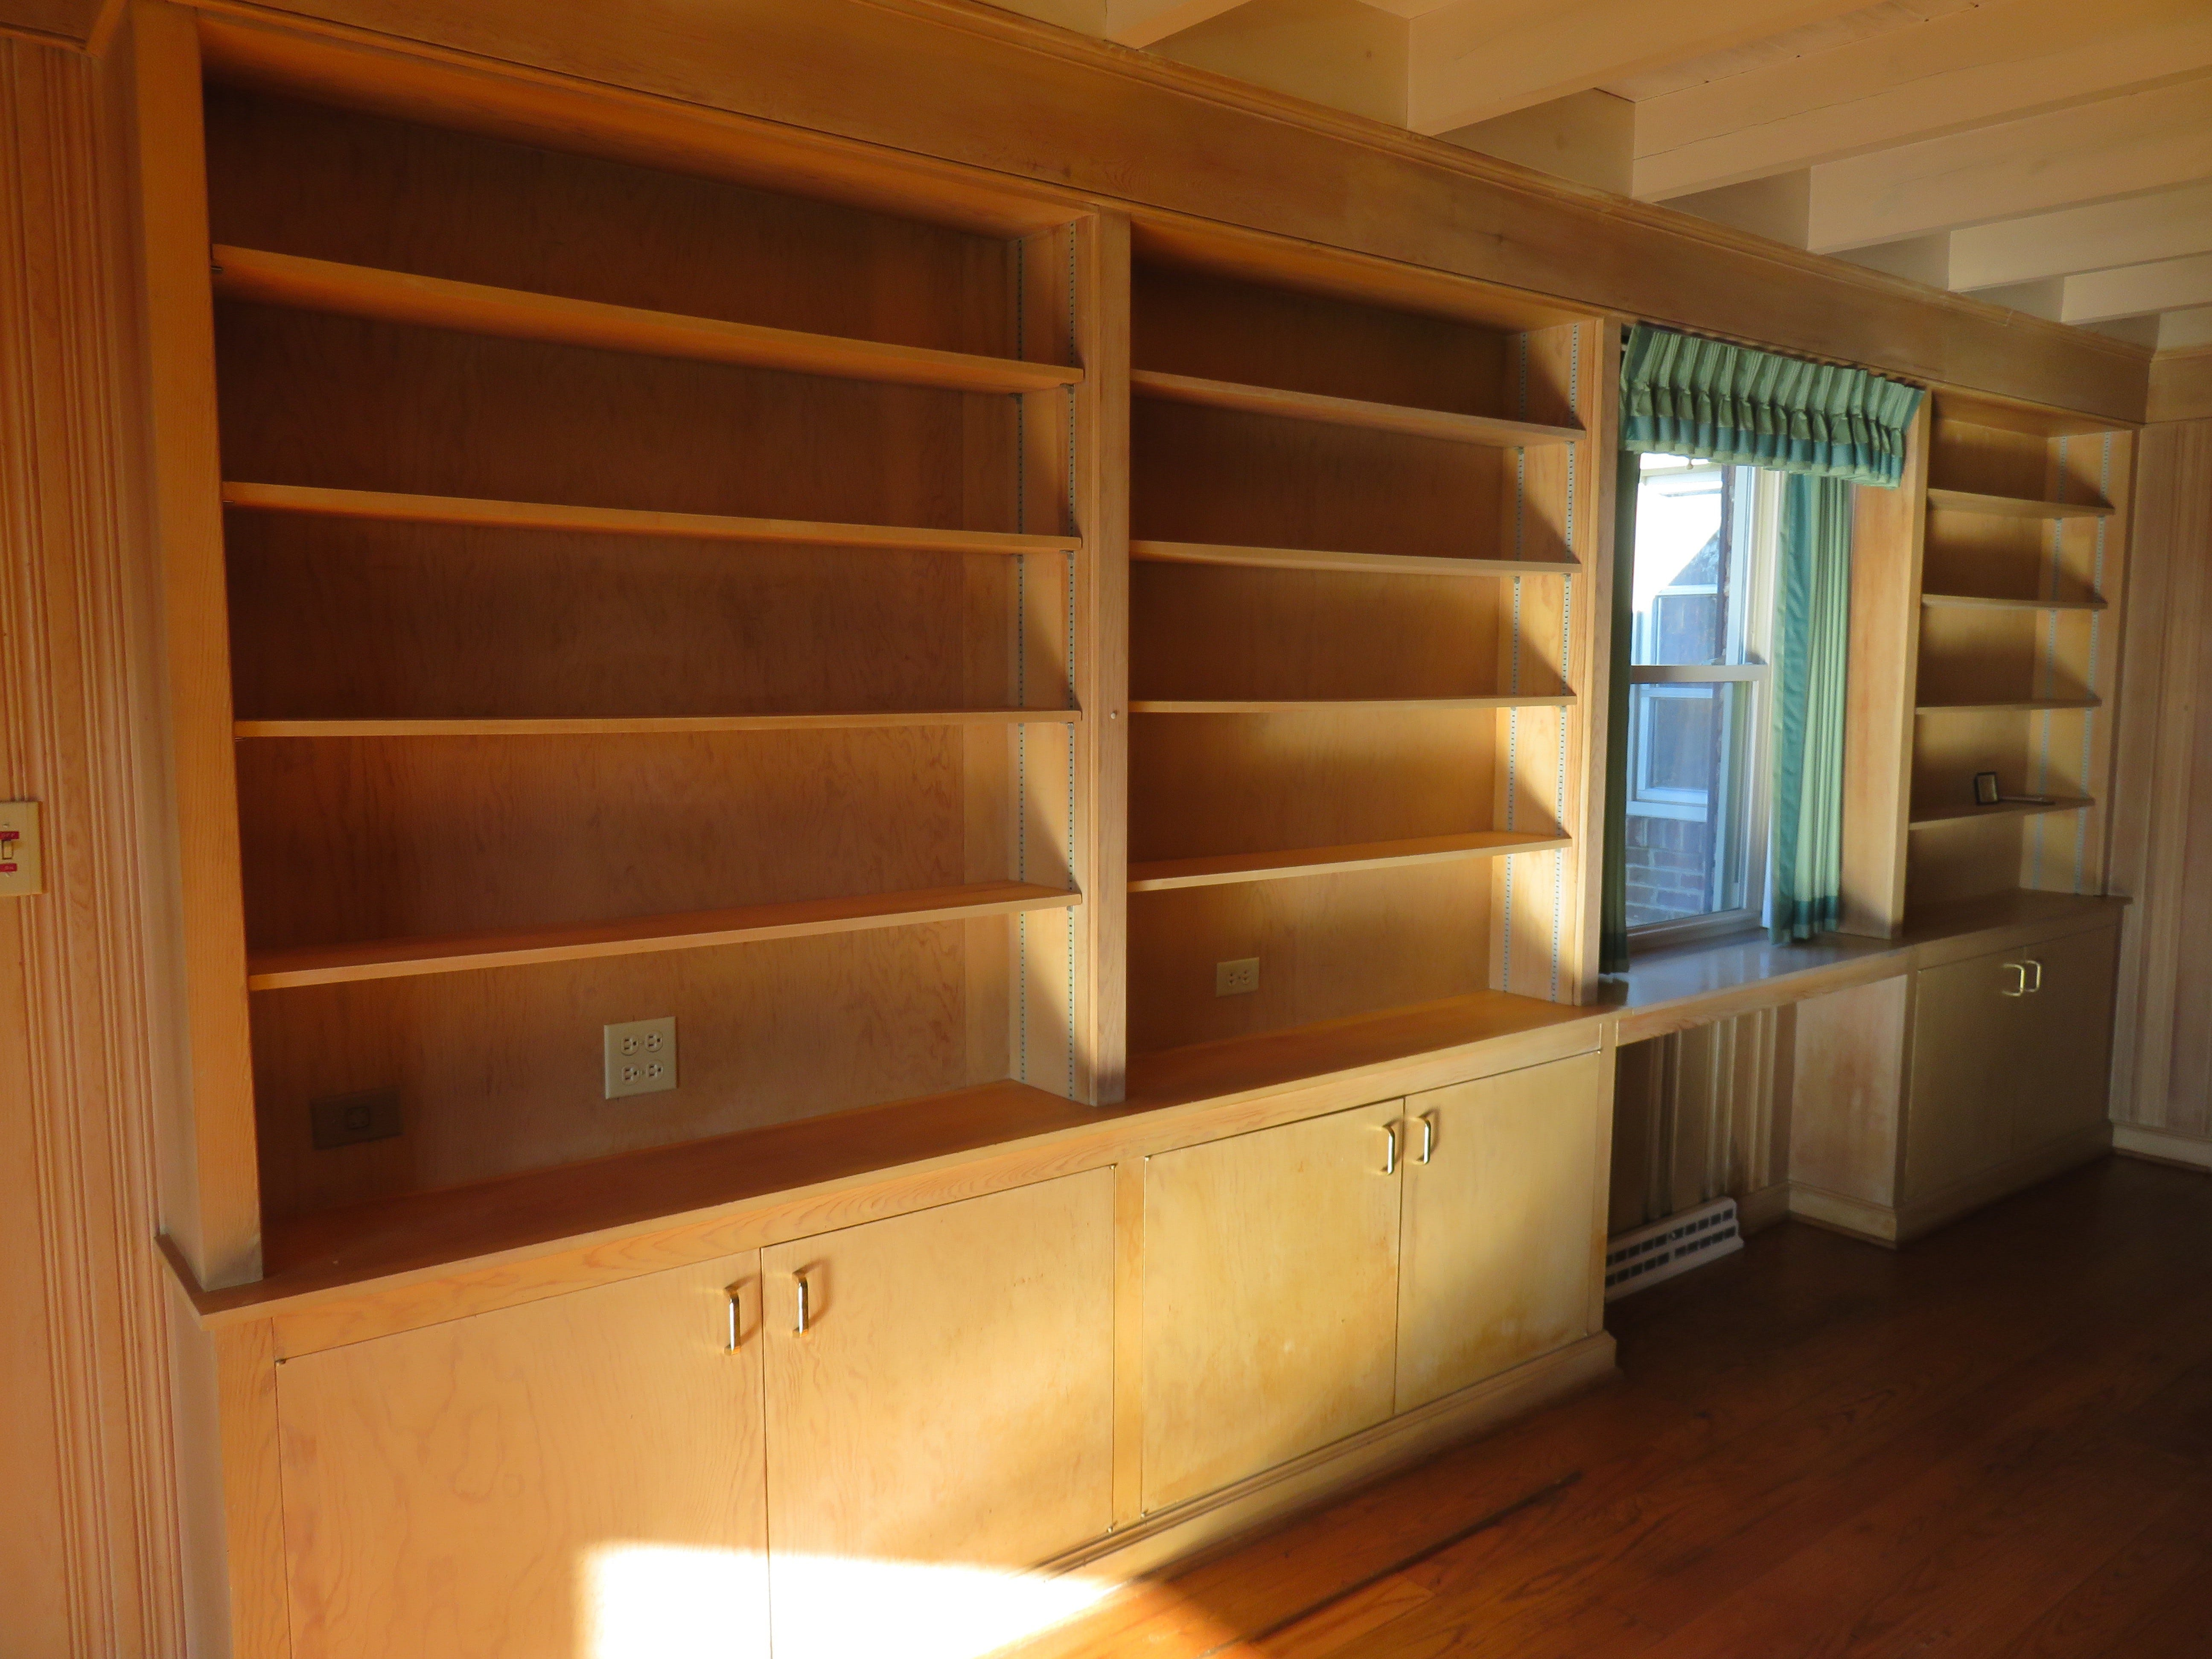 Built-in bookcase in paneled room of Rodgers home.